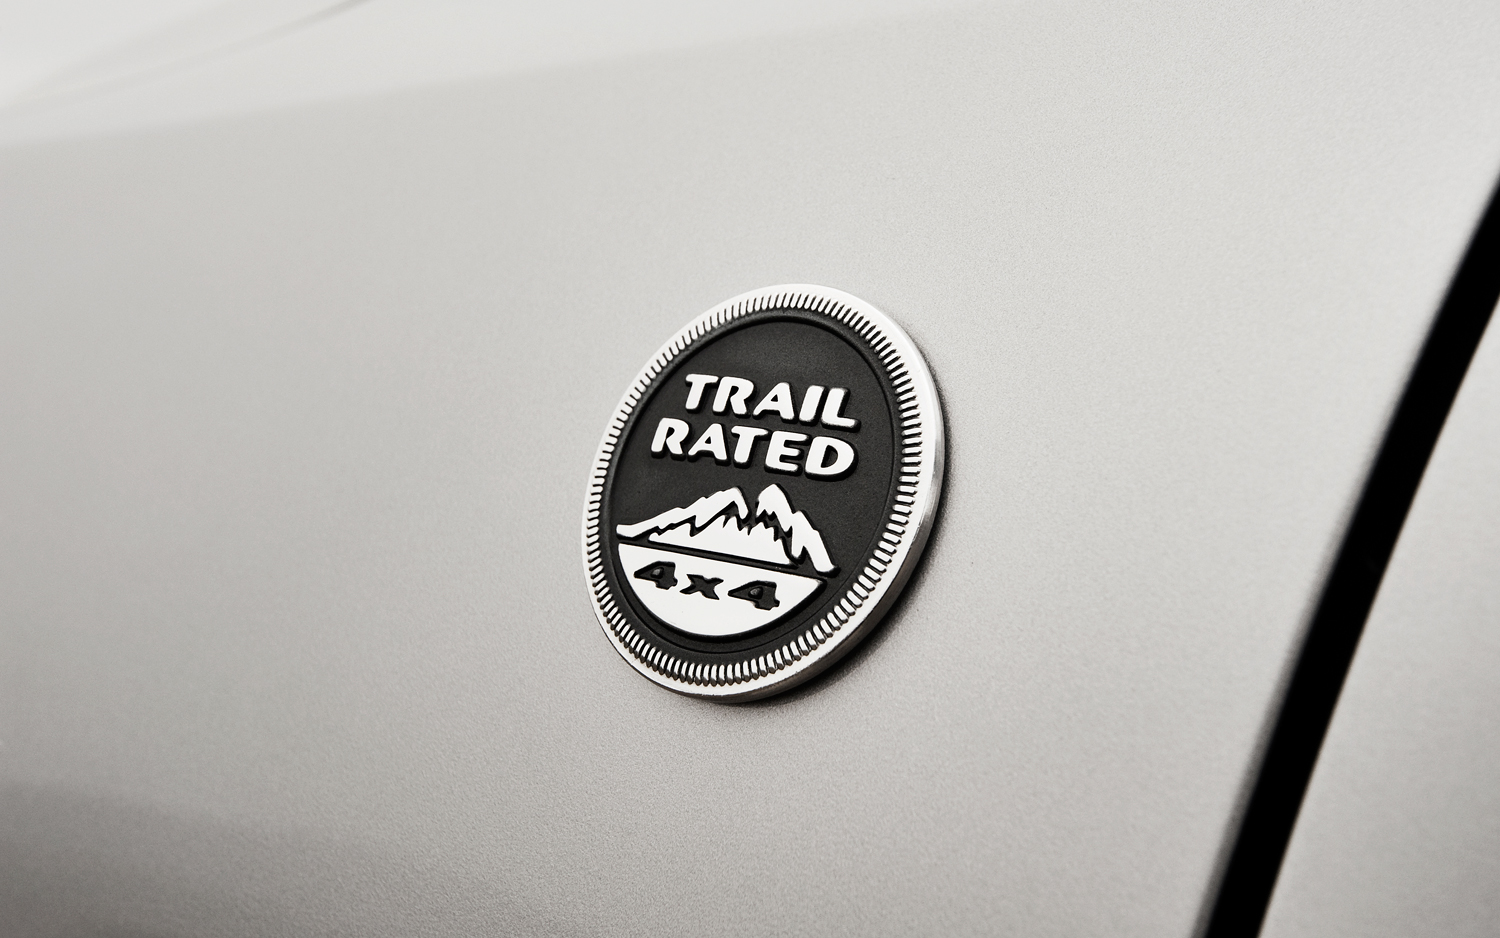 trail rated.jpg